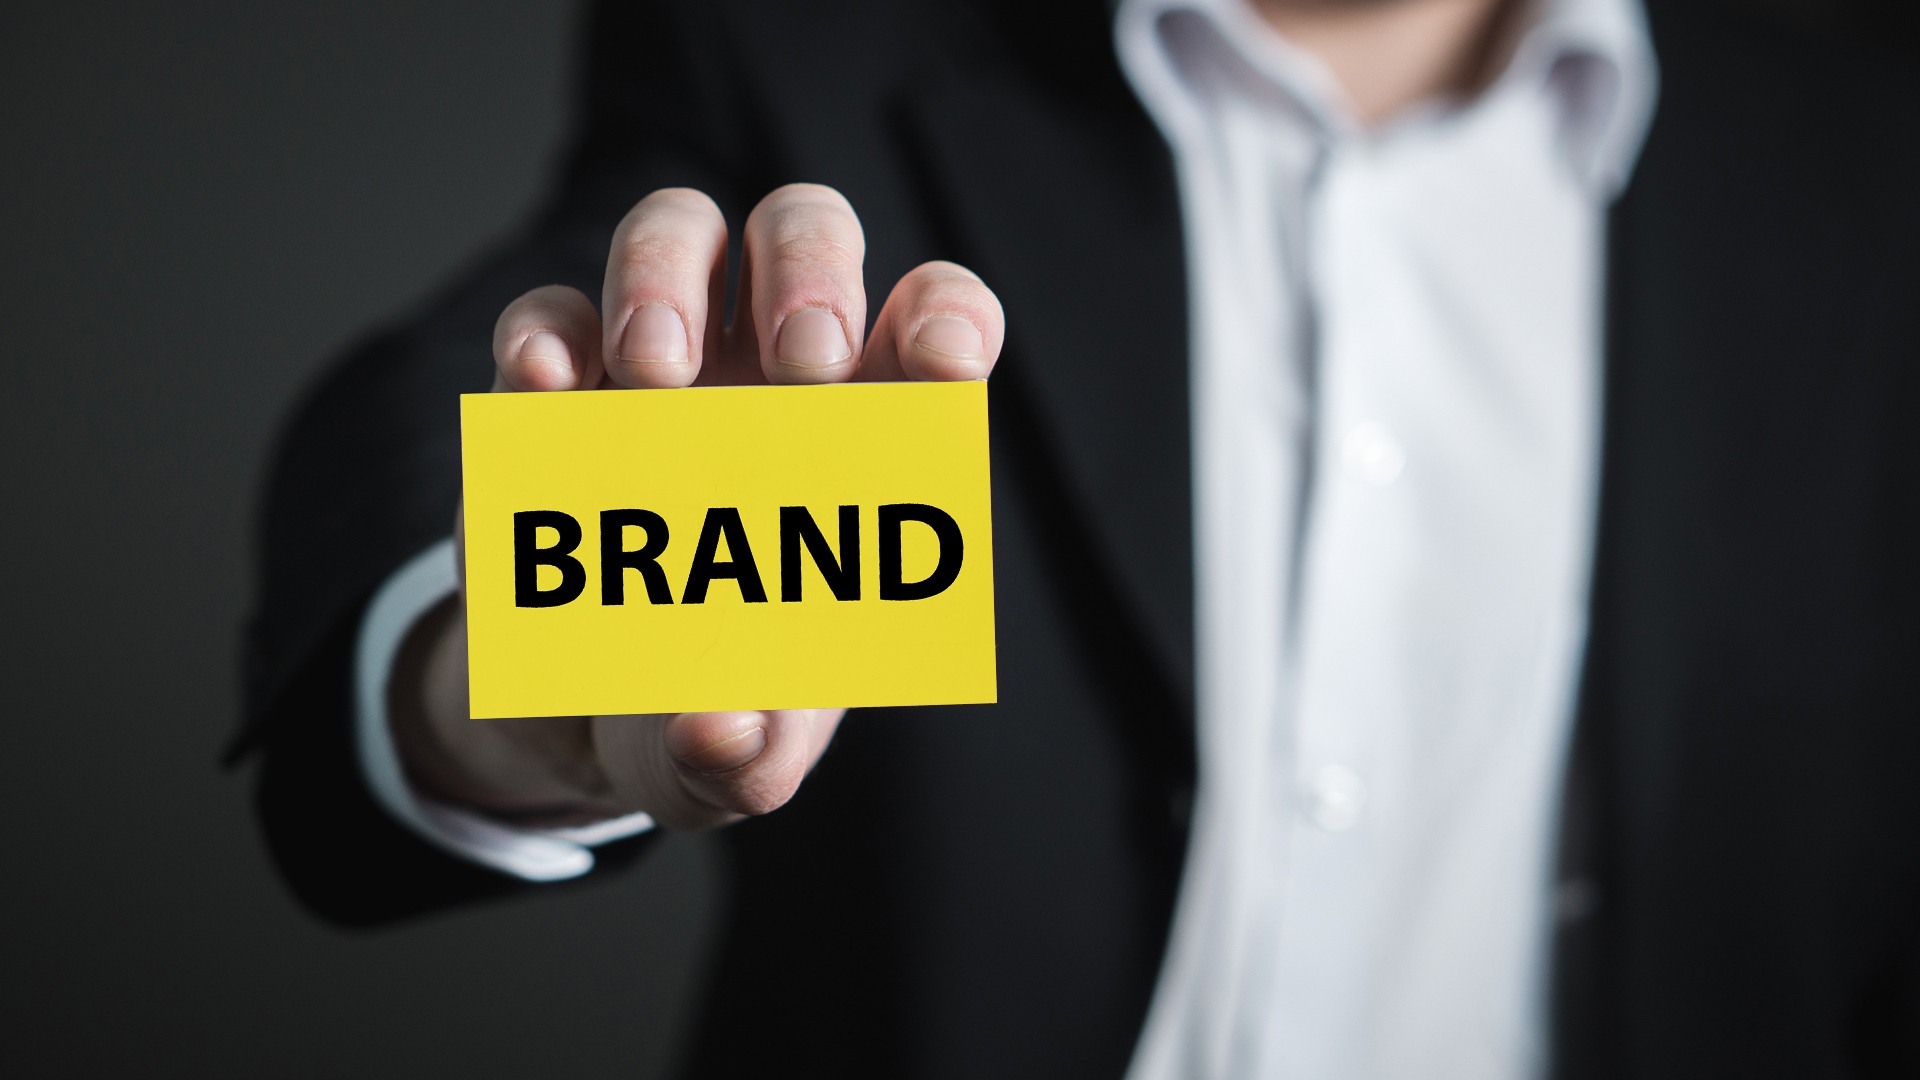 Image for brand